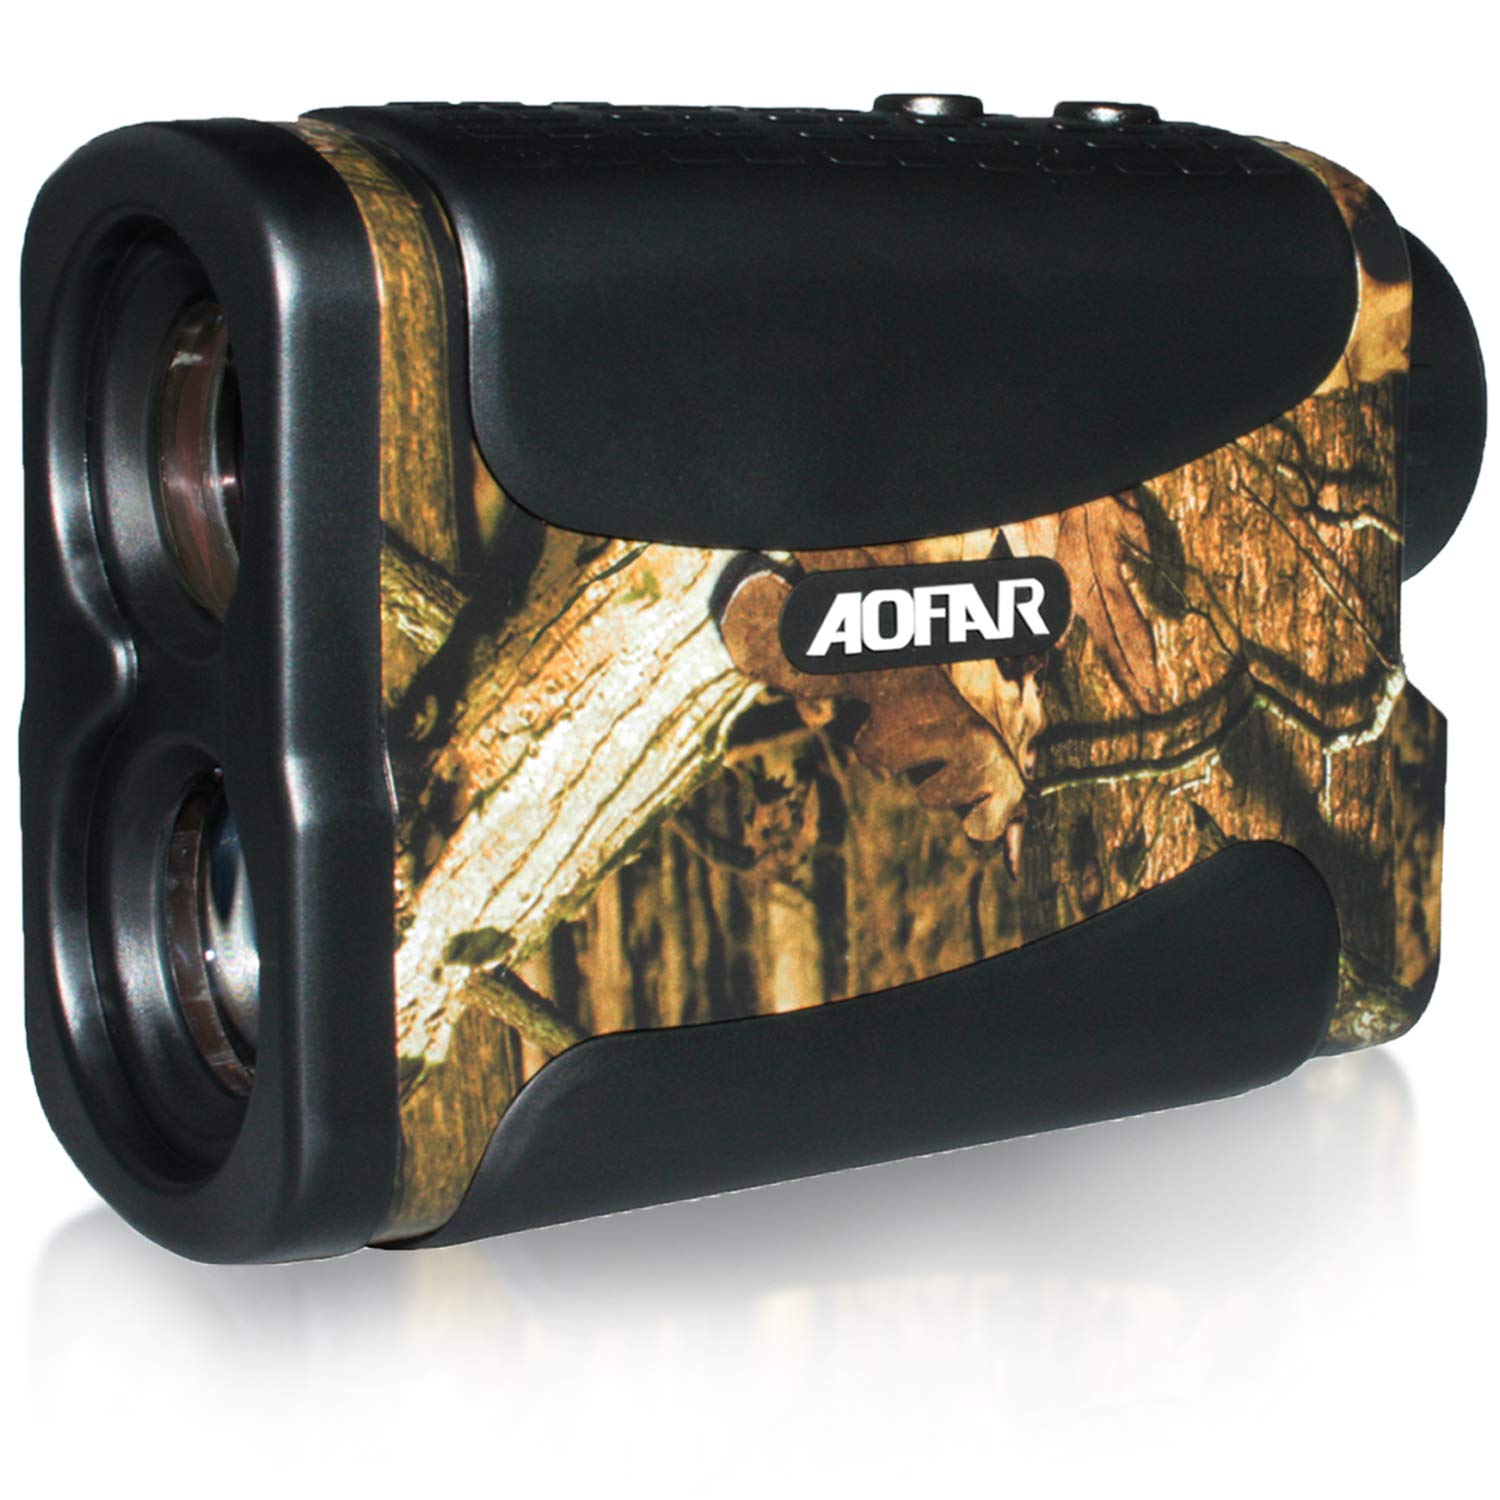 AOFAR HX-700N Golf Range Finder Hunting 700 Yards Waterproof Archery Rangefinder for Bow Hunting with Range Scan Fog and Speed Mode, Free Battery, Carrying Case